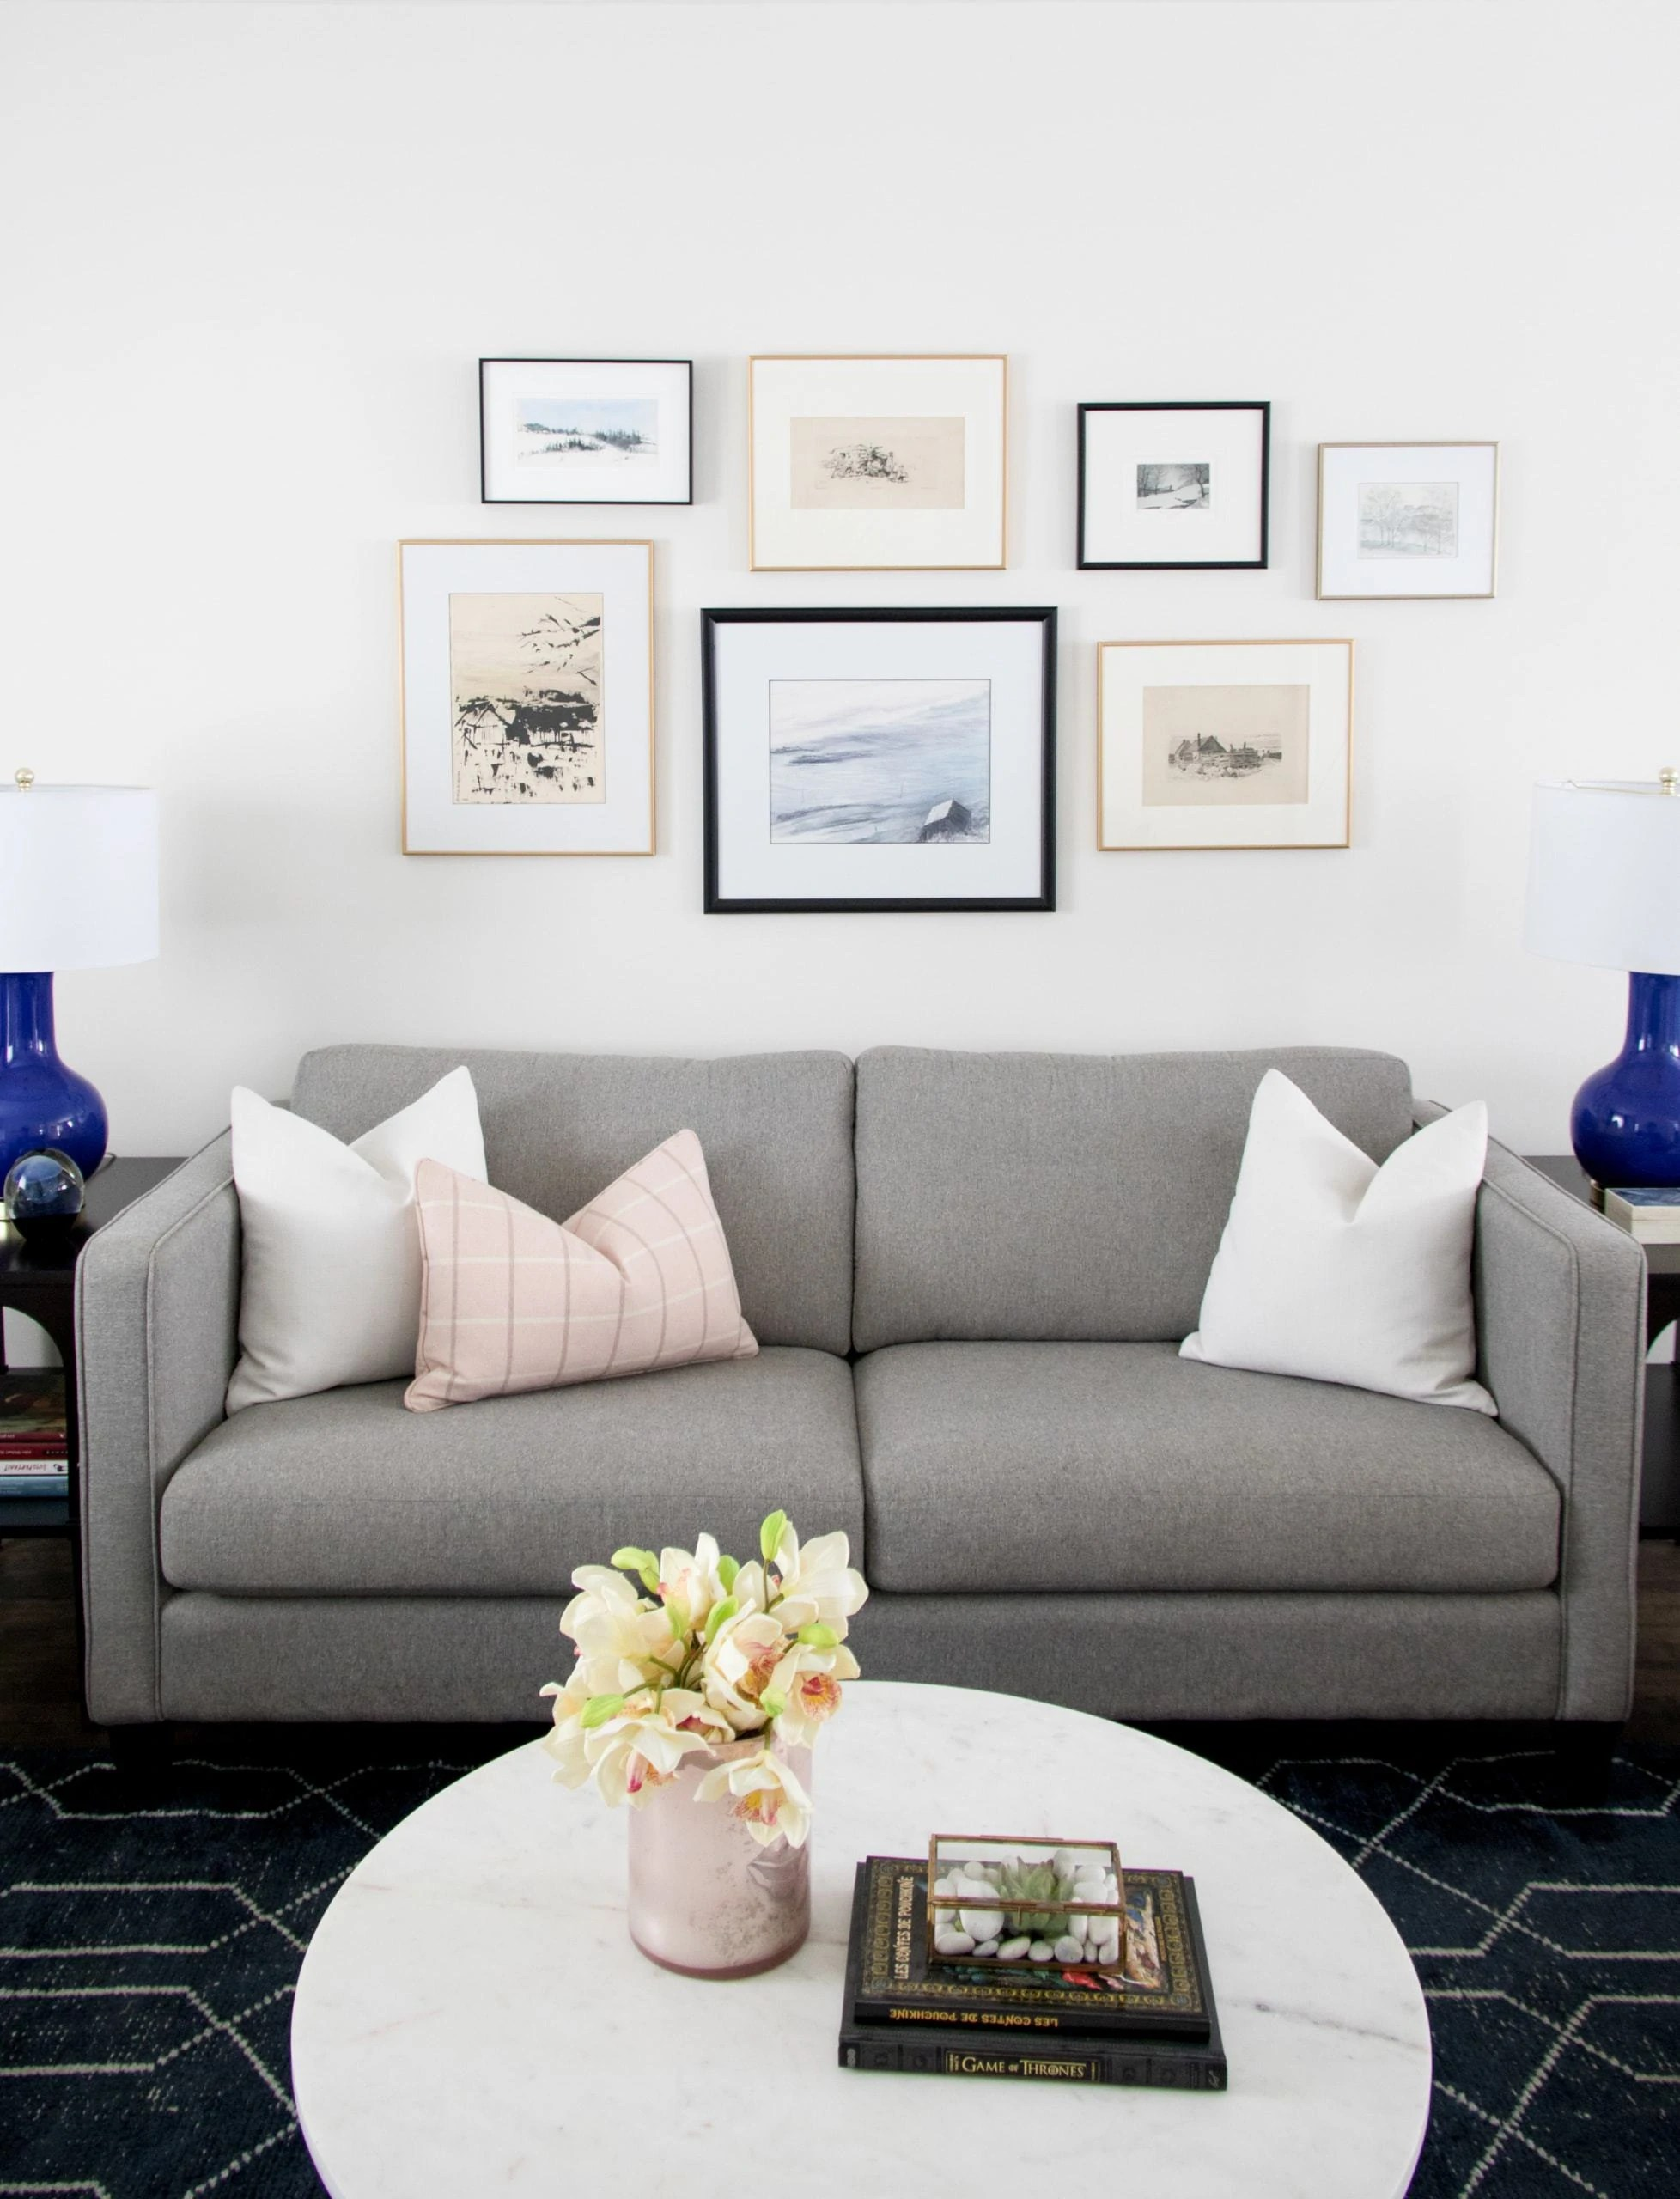 Gray couch with pictures above it inside a living room